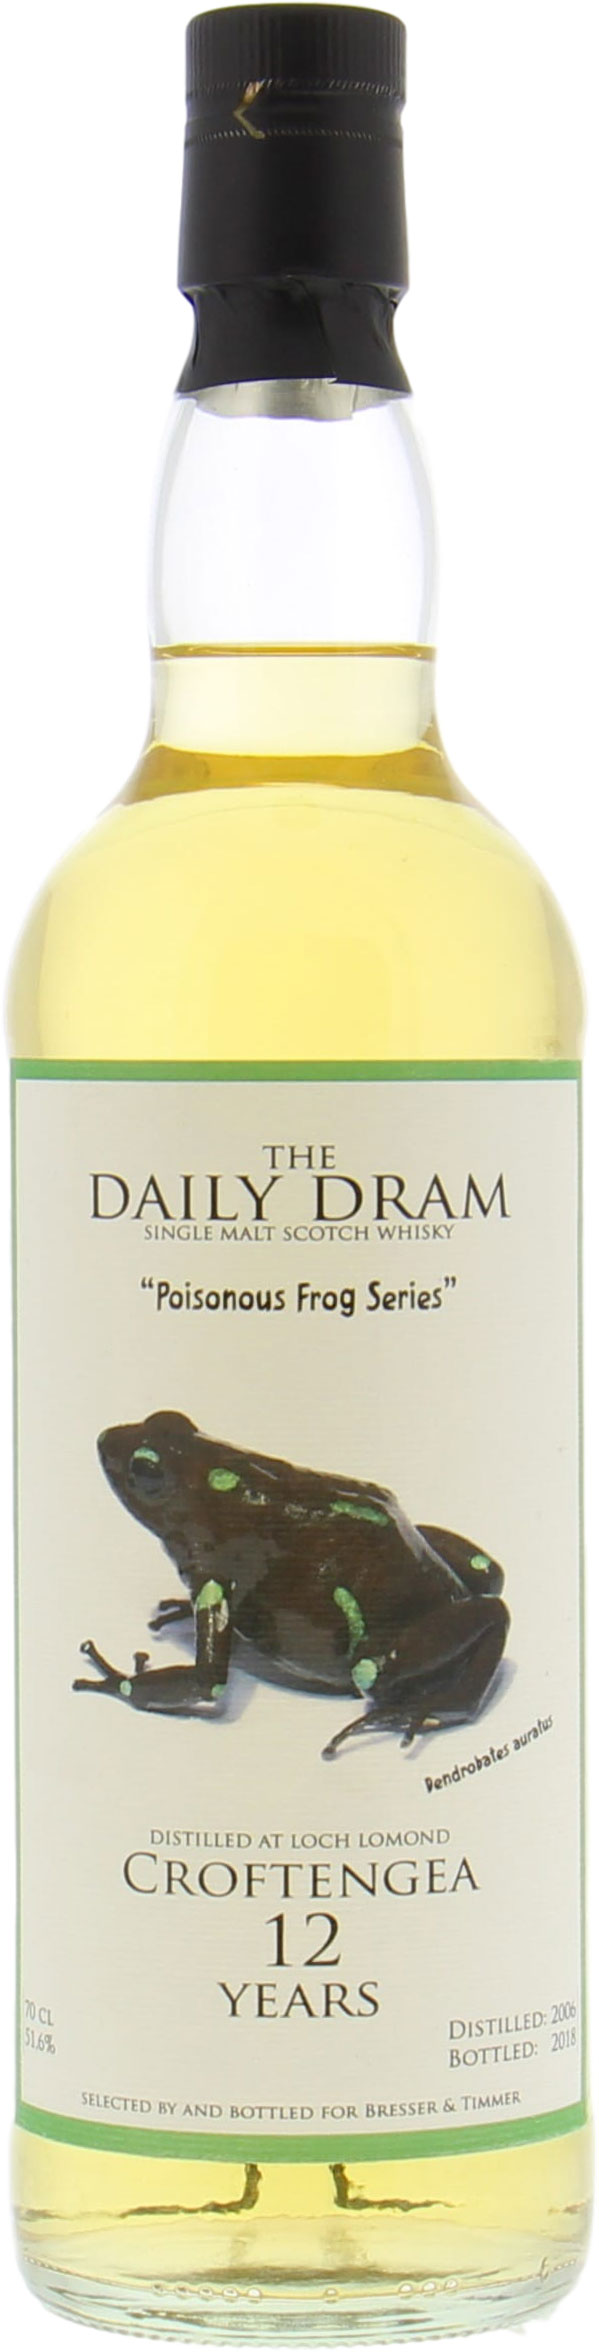 Croftengea - Daily Dram 12 Years Old Poisonous Frog 51.6% 2006